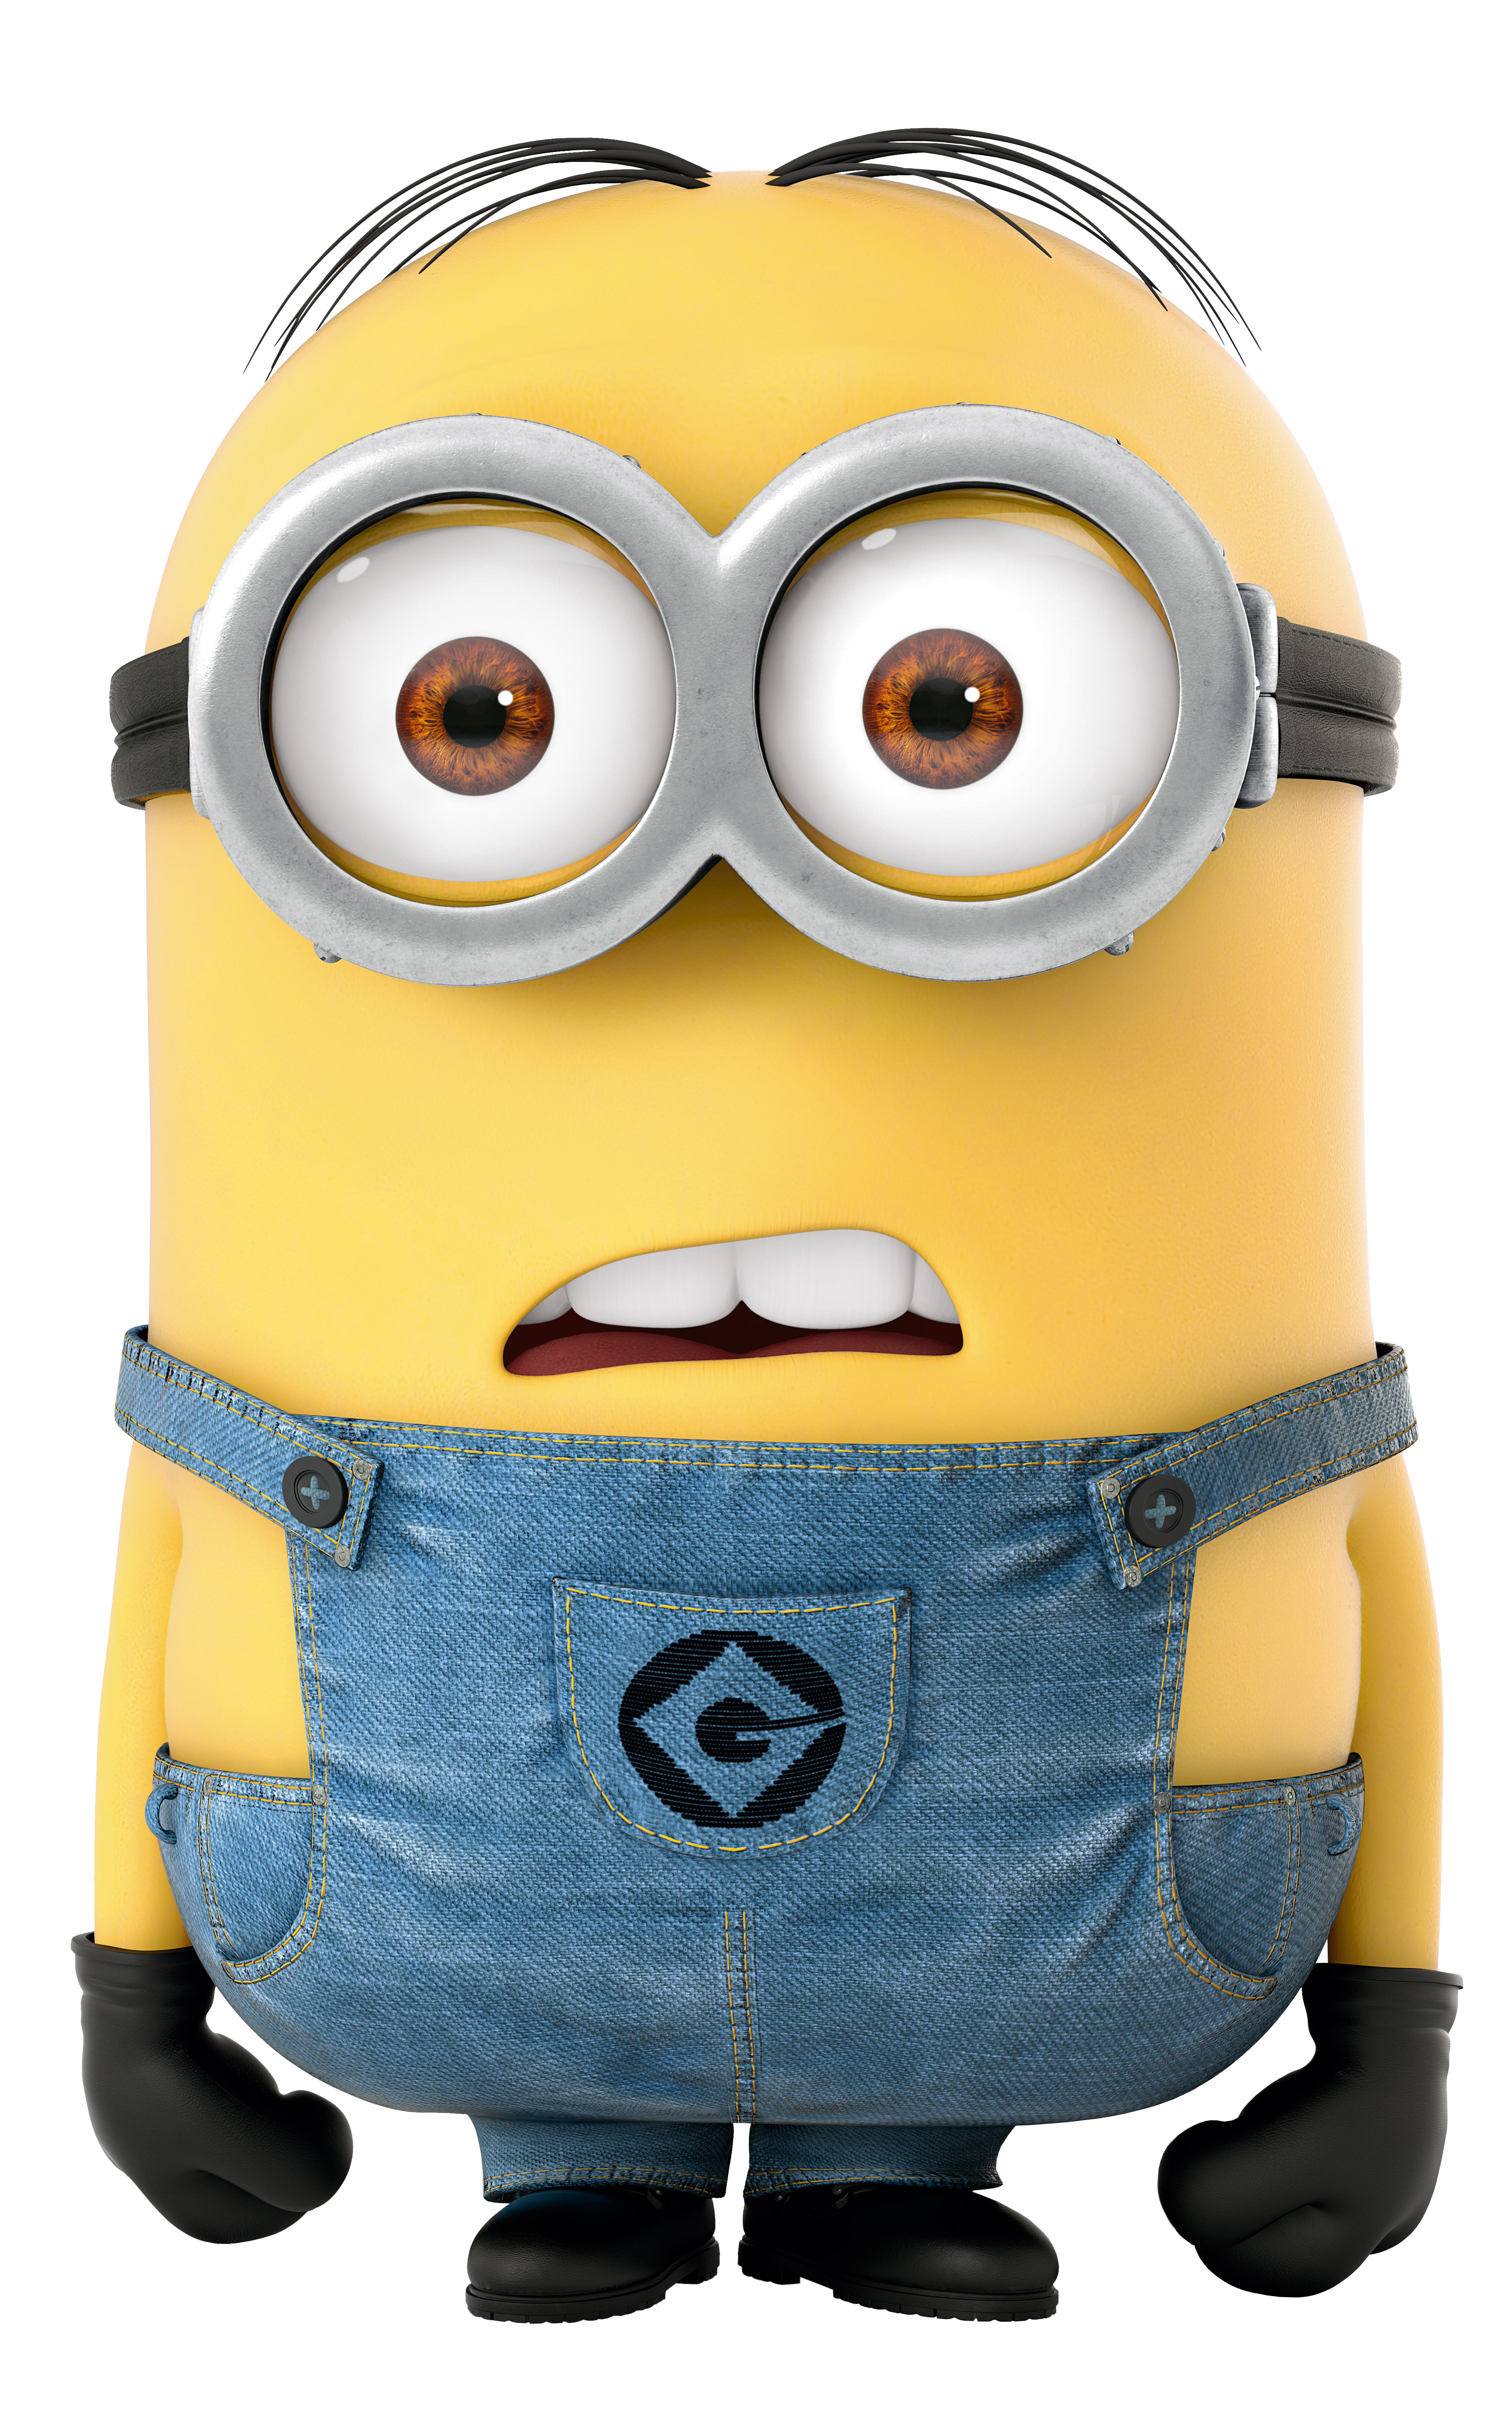 Clip art image gallery. Minion png images